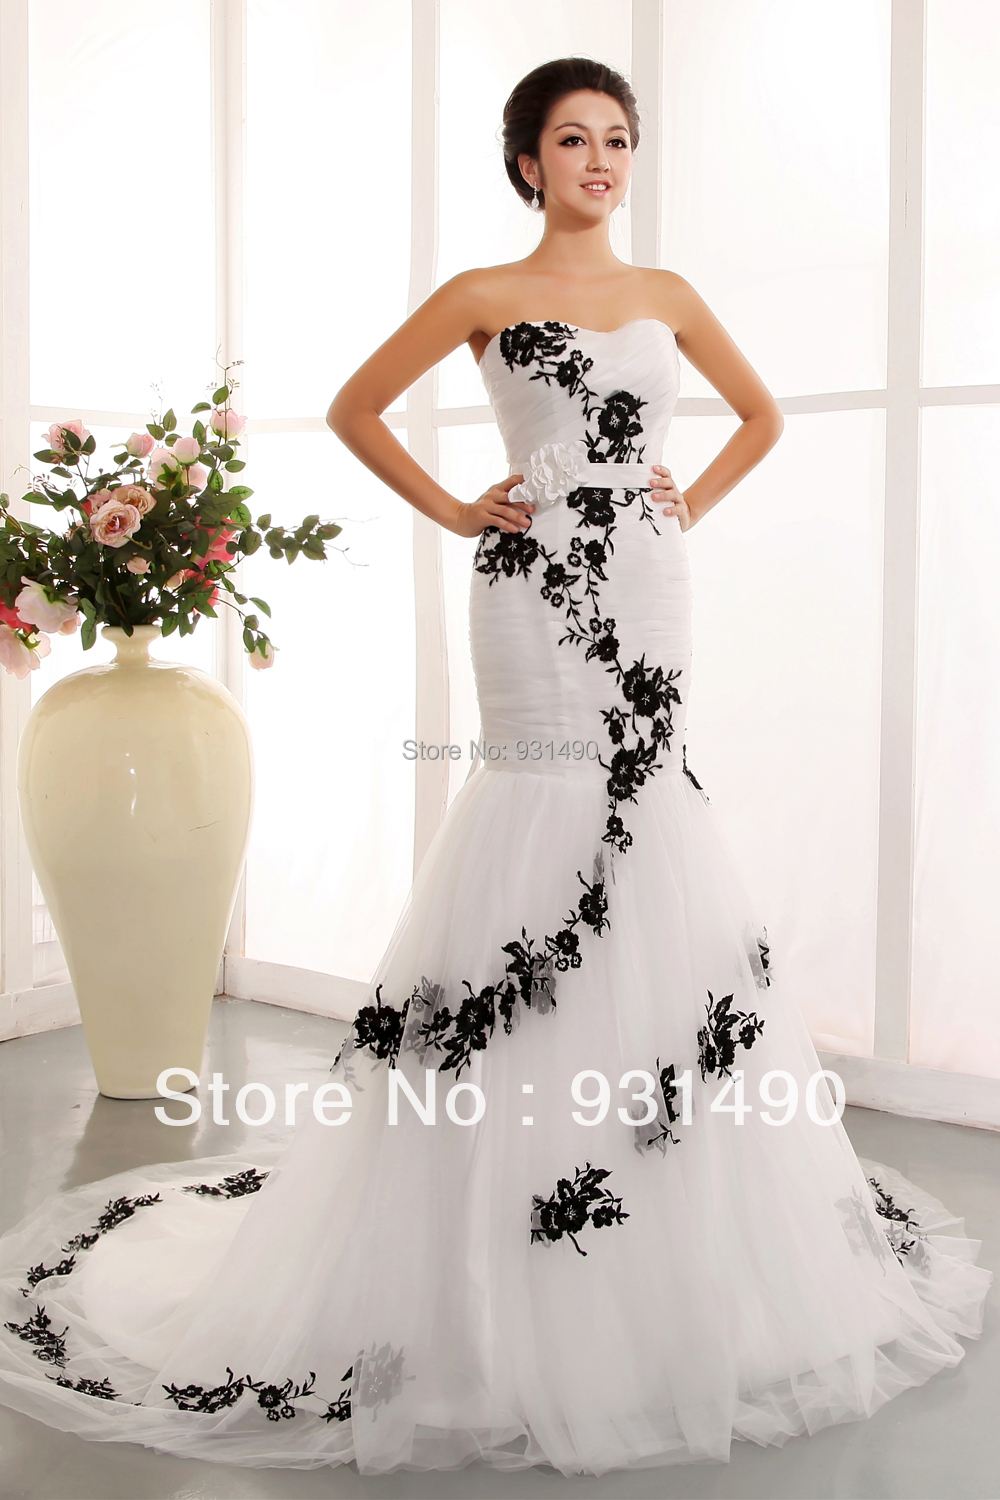 Hot Sale Strapless Sweetheart Black Embroidery Prom Bridal Gown